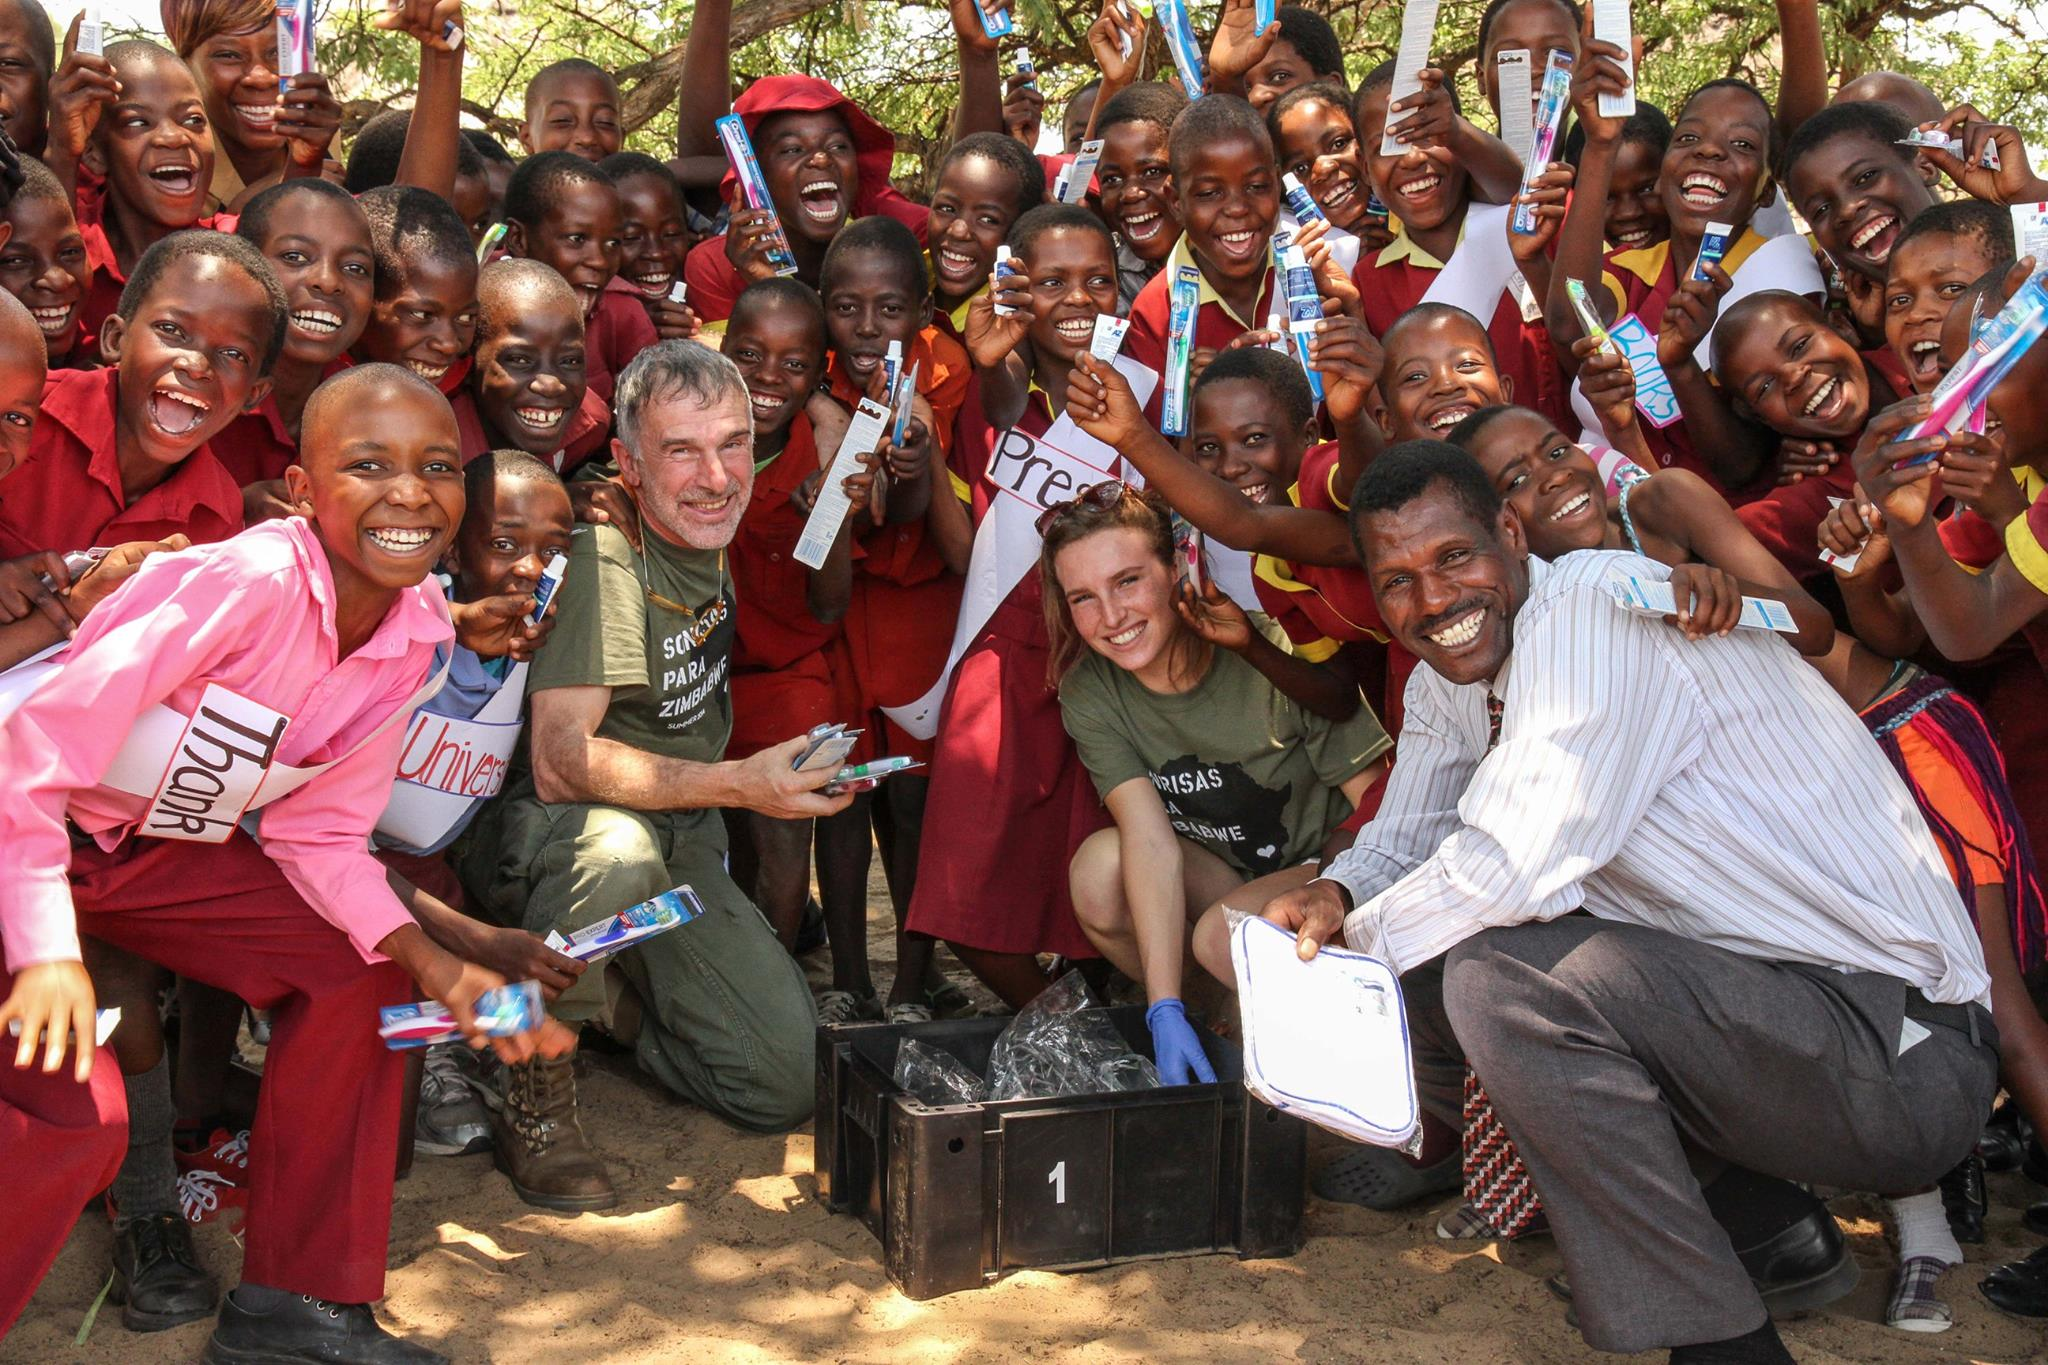 Thanks to our friends from GUM and Post Oak Dental, each child received a toothbrush and toothpaste at the Ngamo School.